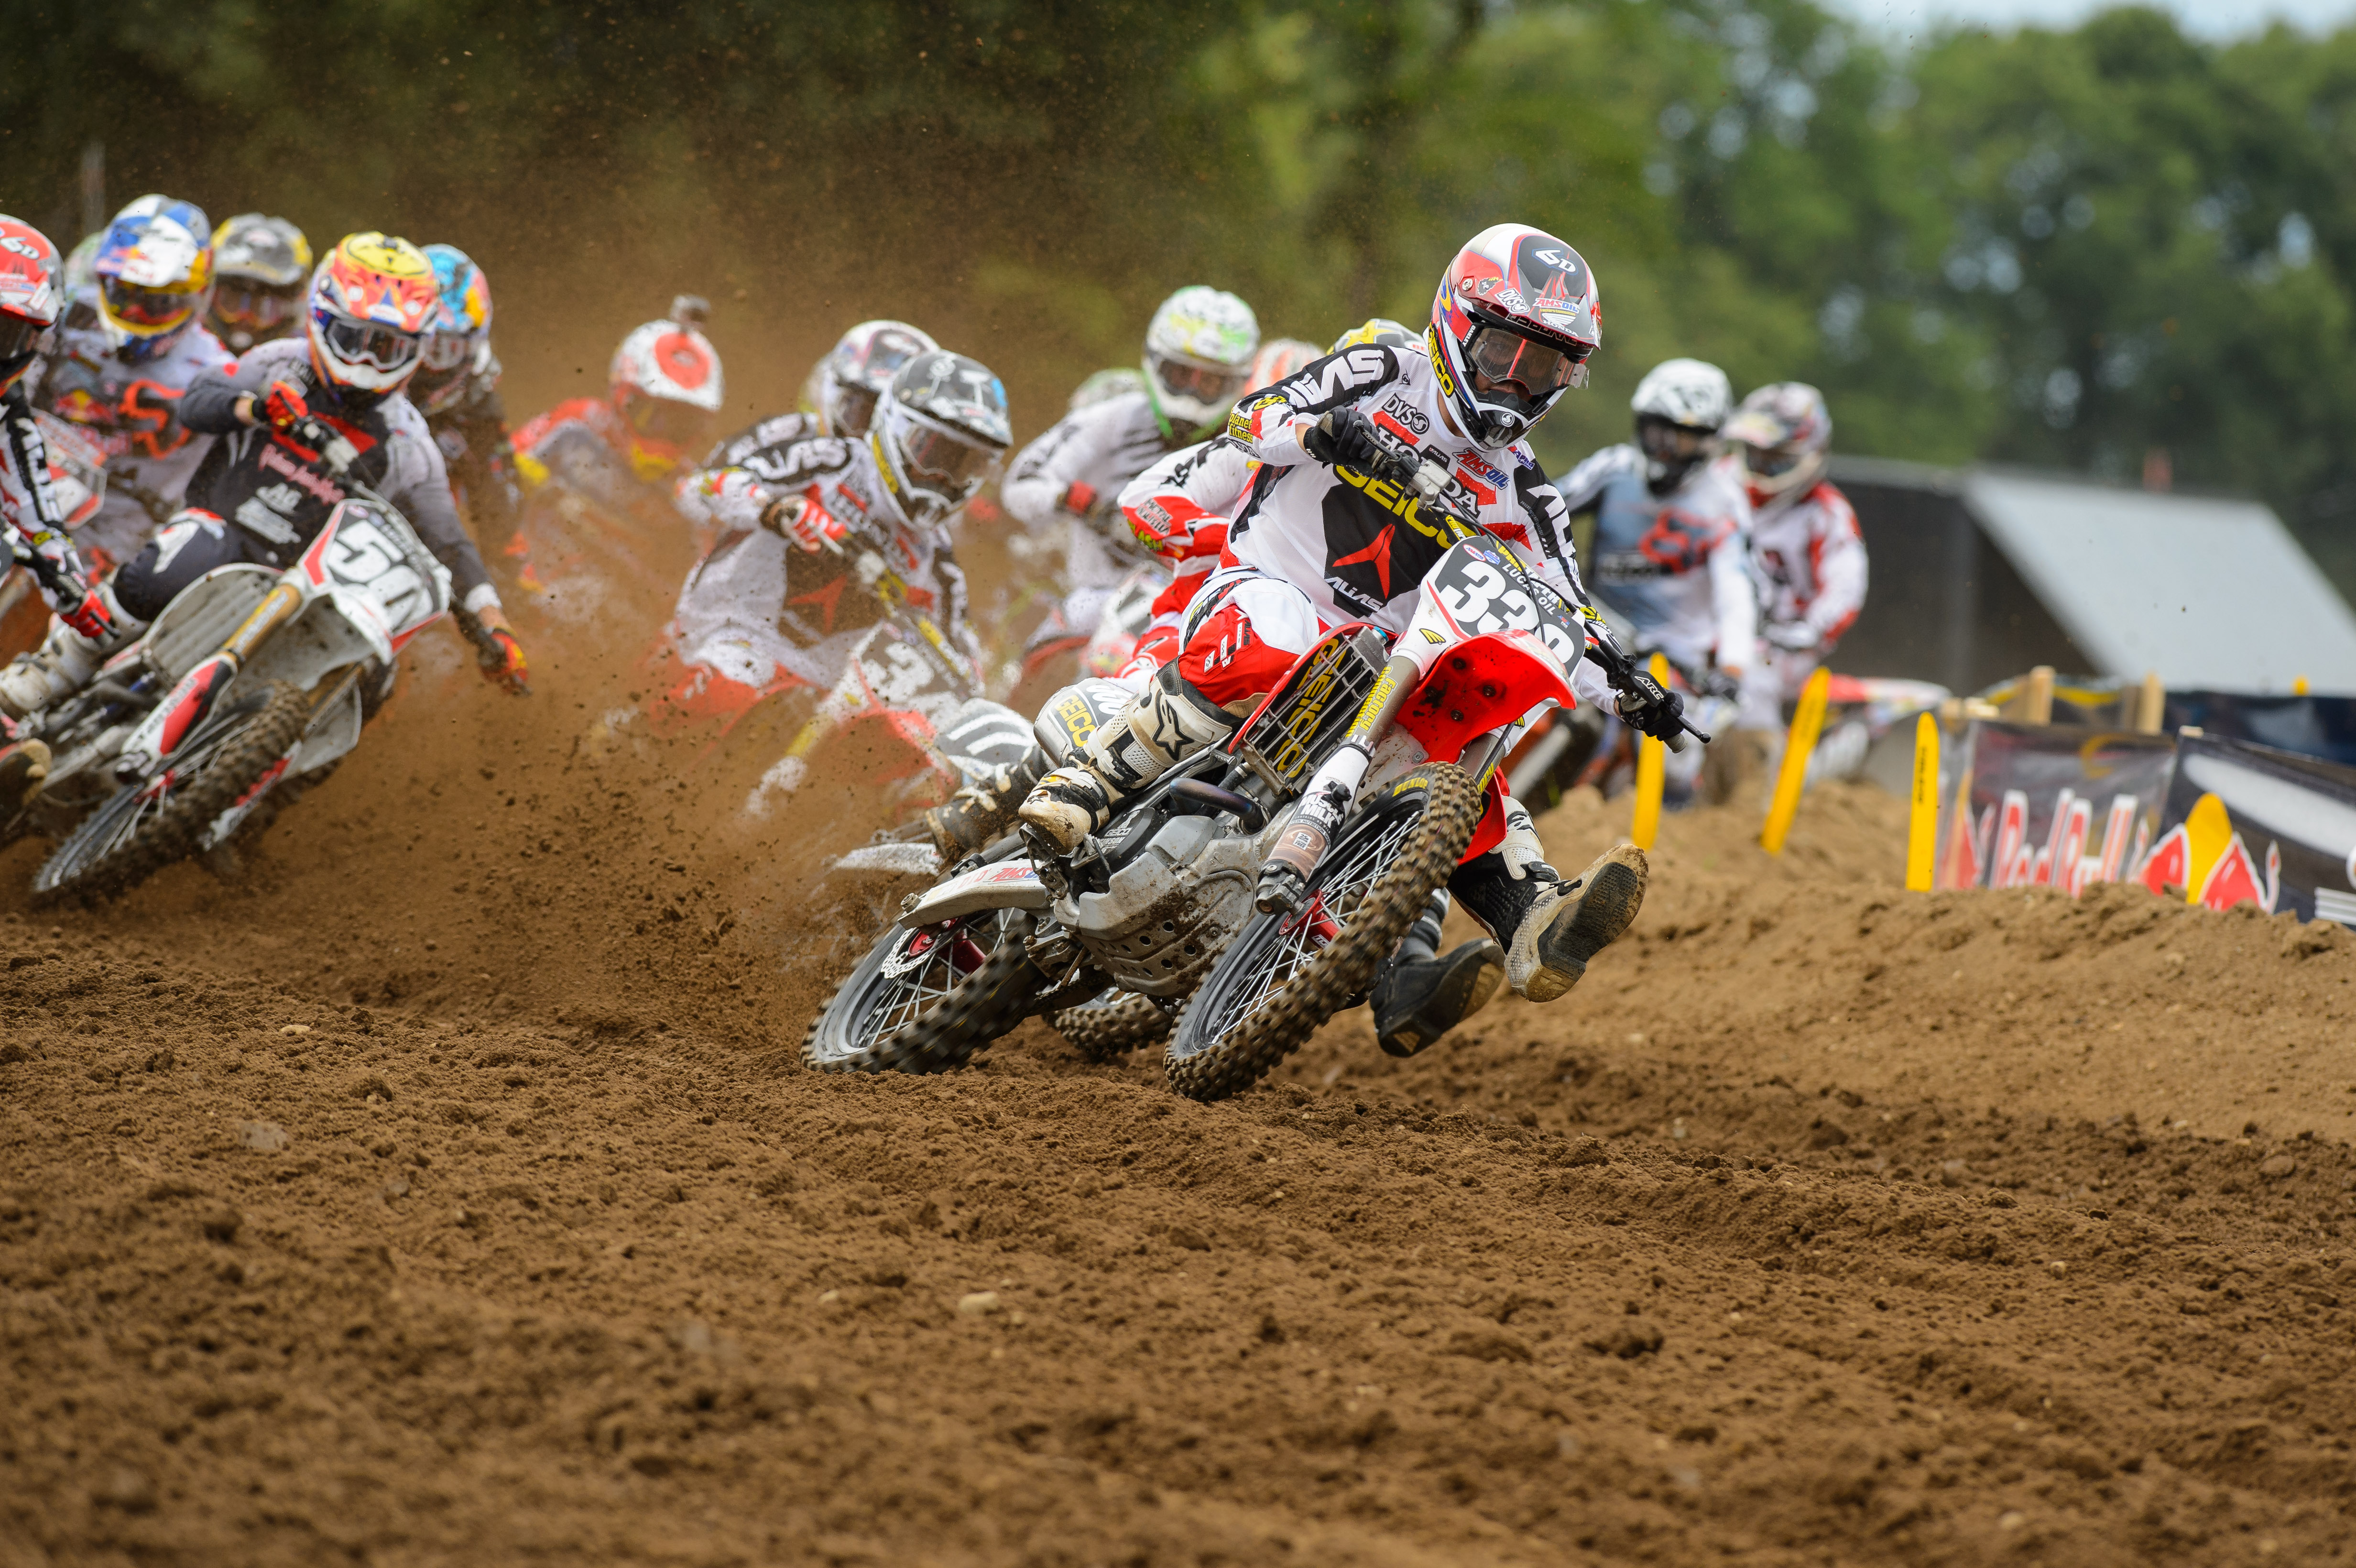 honda-dirt-bike-wallpaper